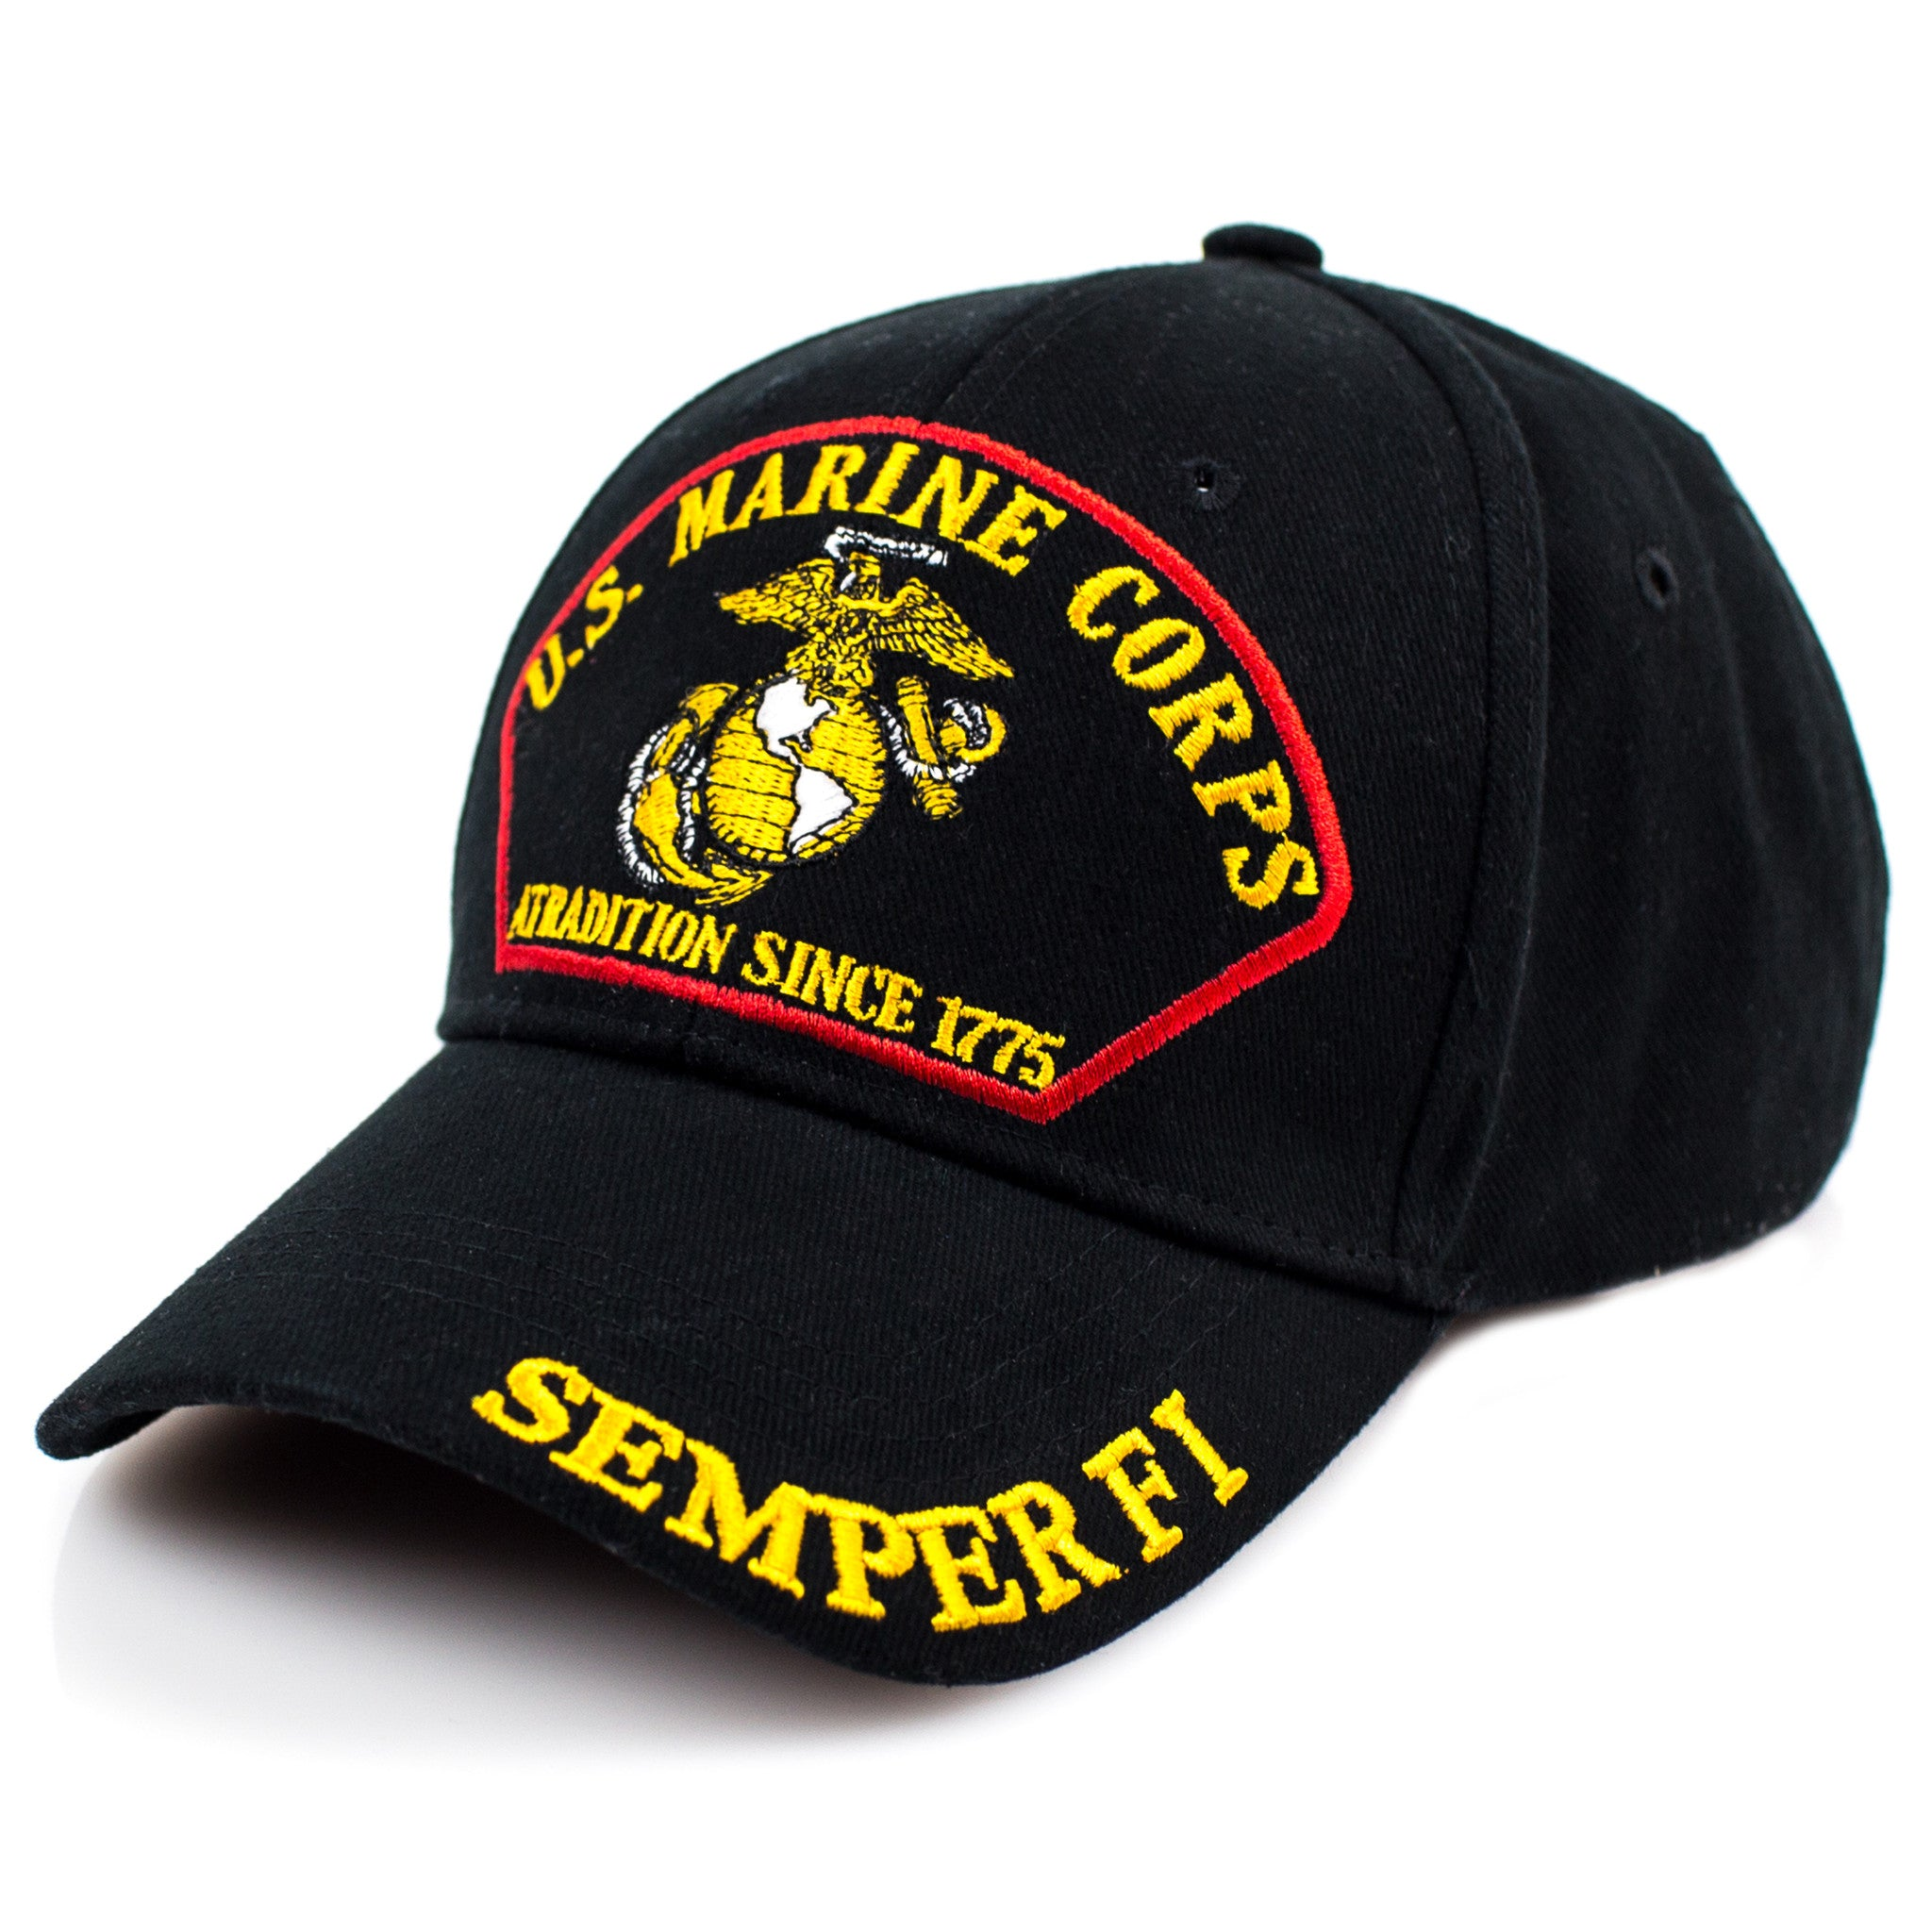 U.S. Marine Corps Tradition Since 1775 Semper Fi Hat